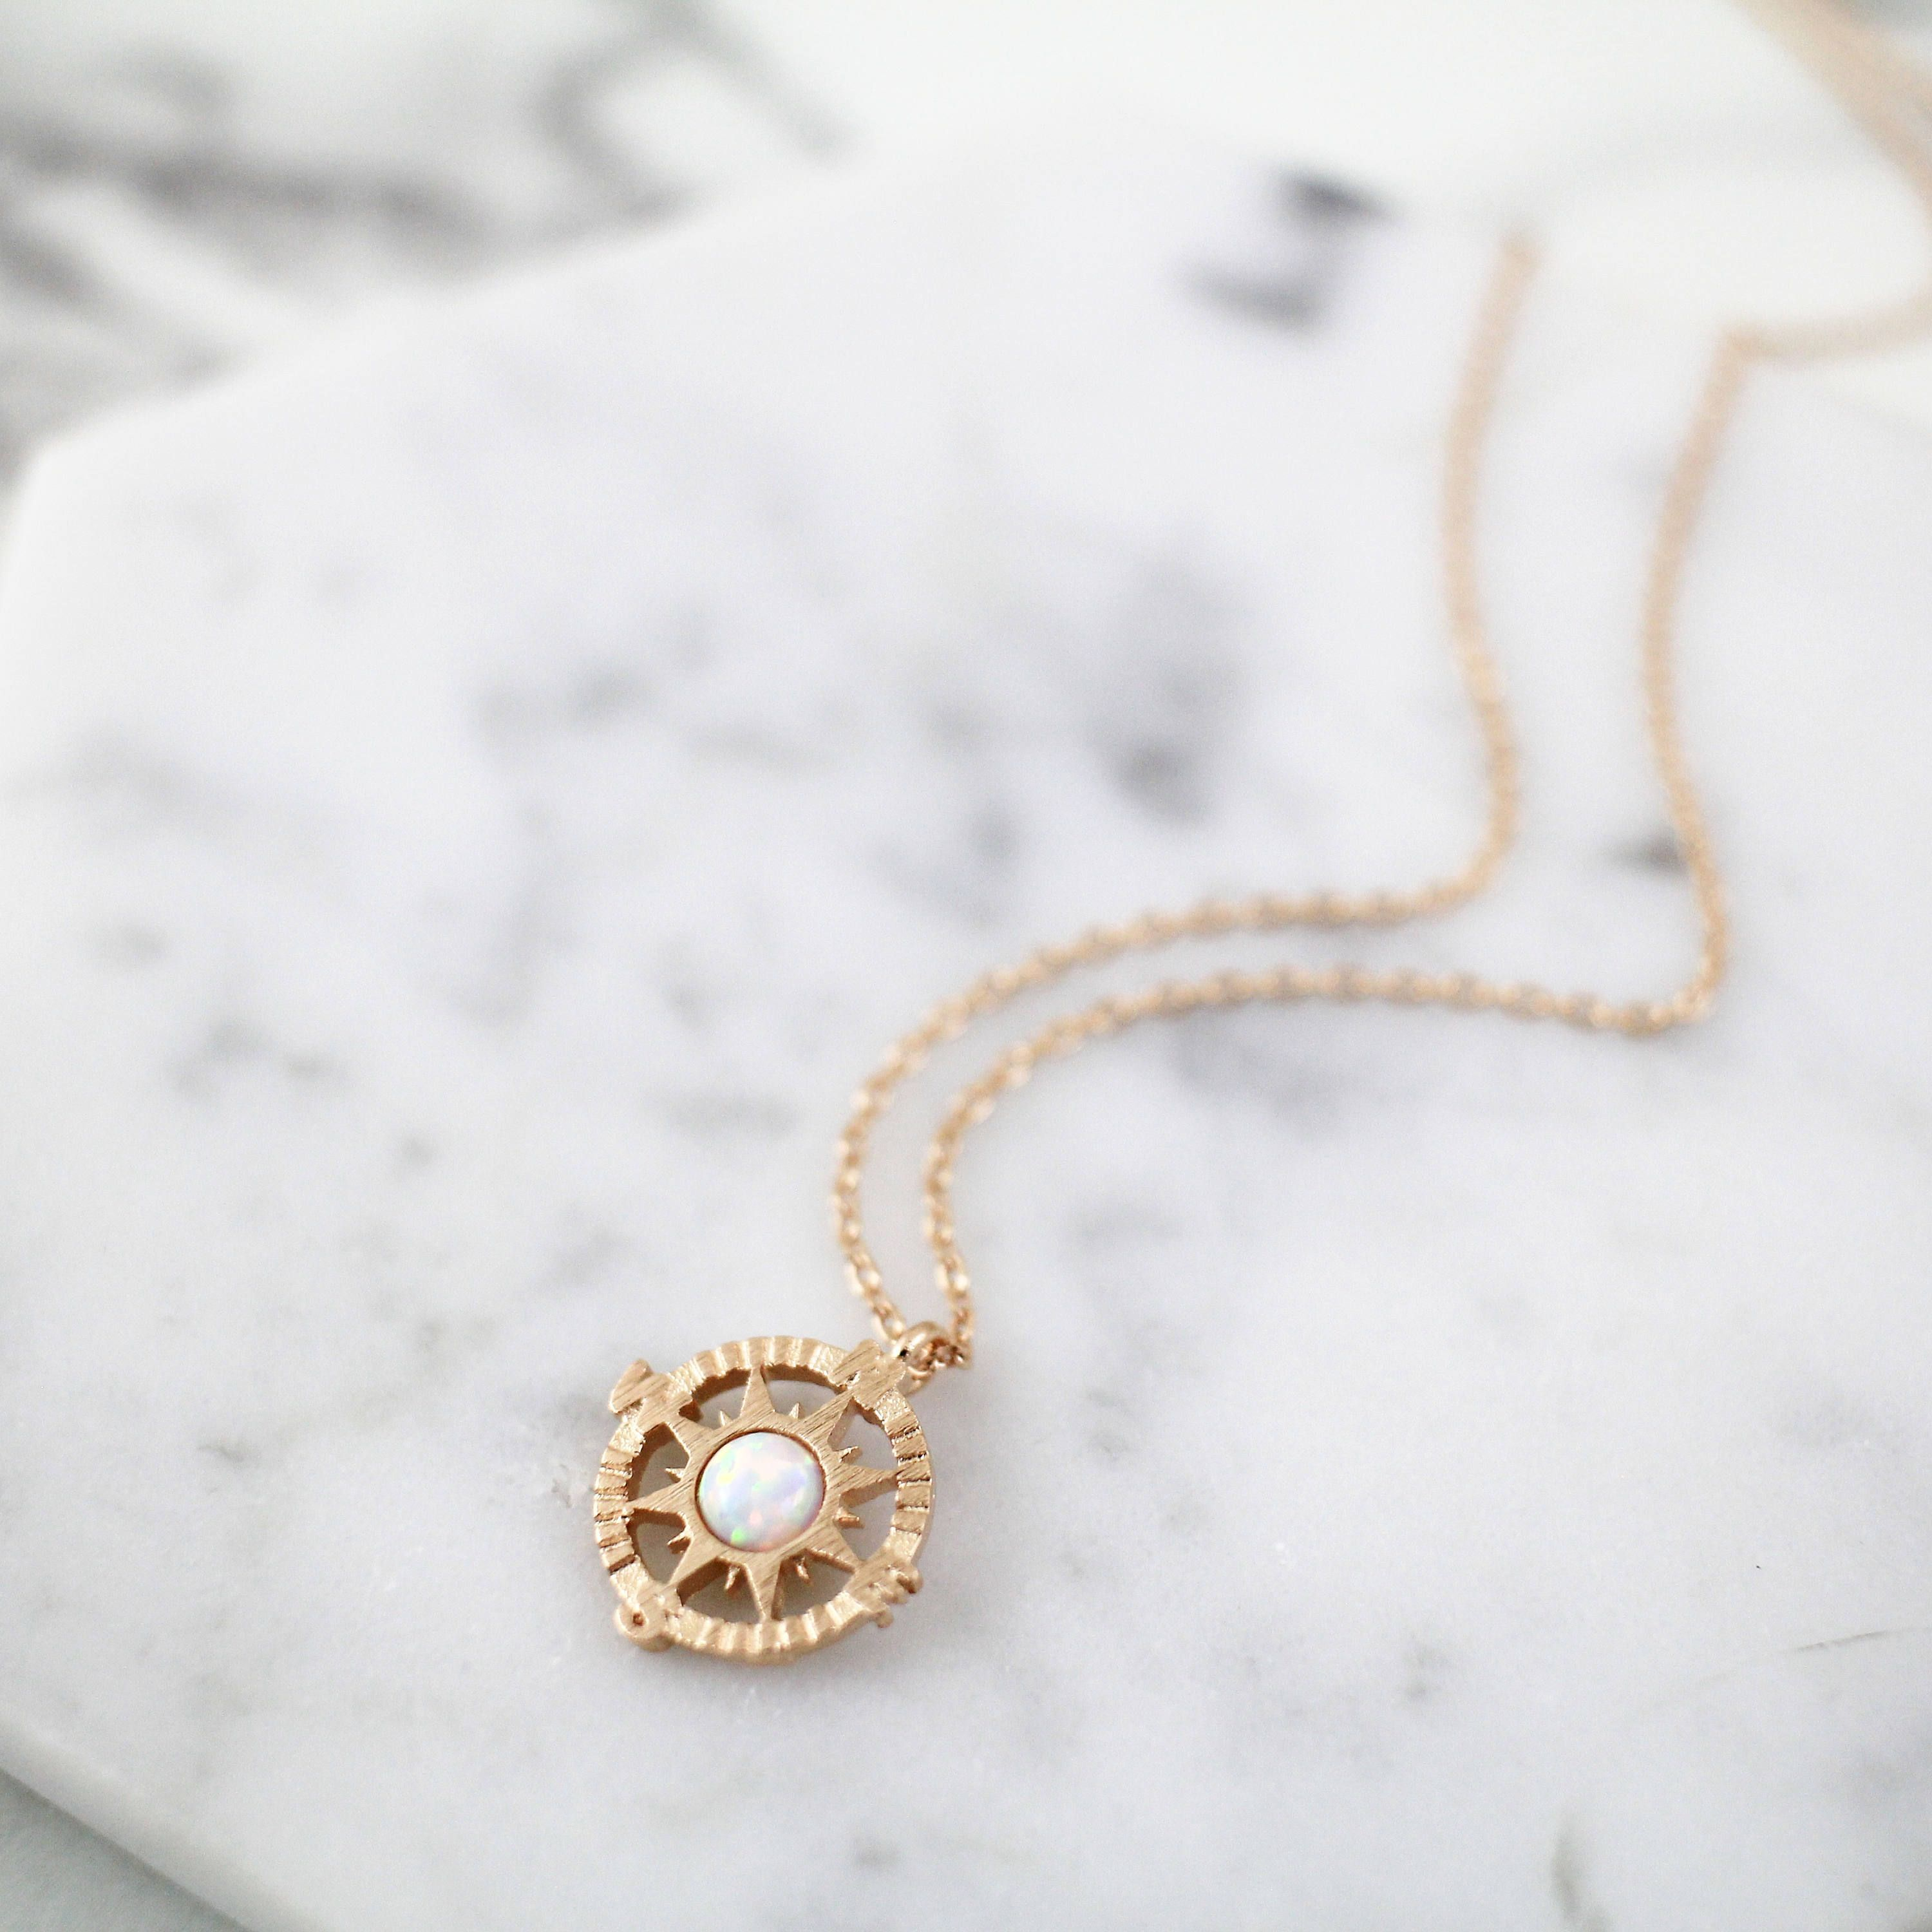 Rose gold compass with opal stone charm necklace rose gold necklace